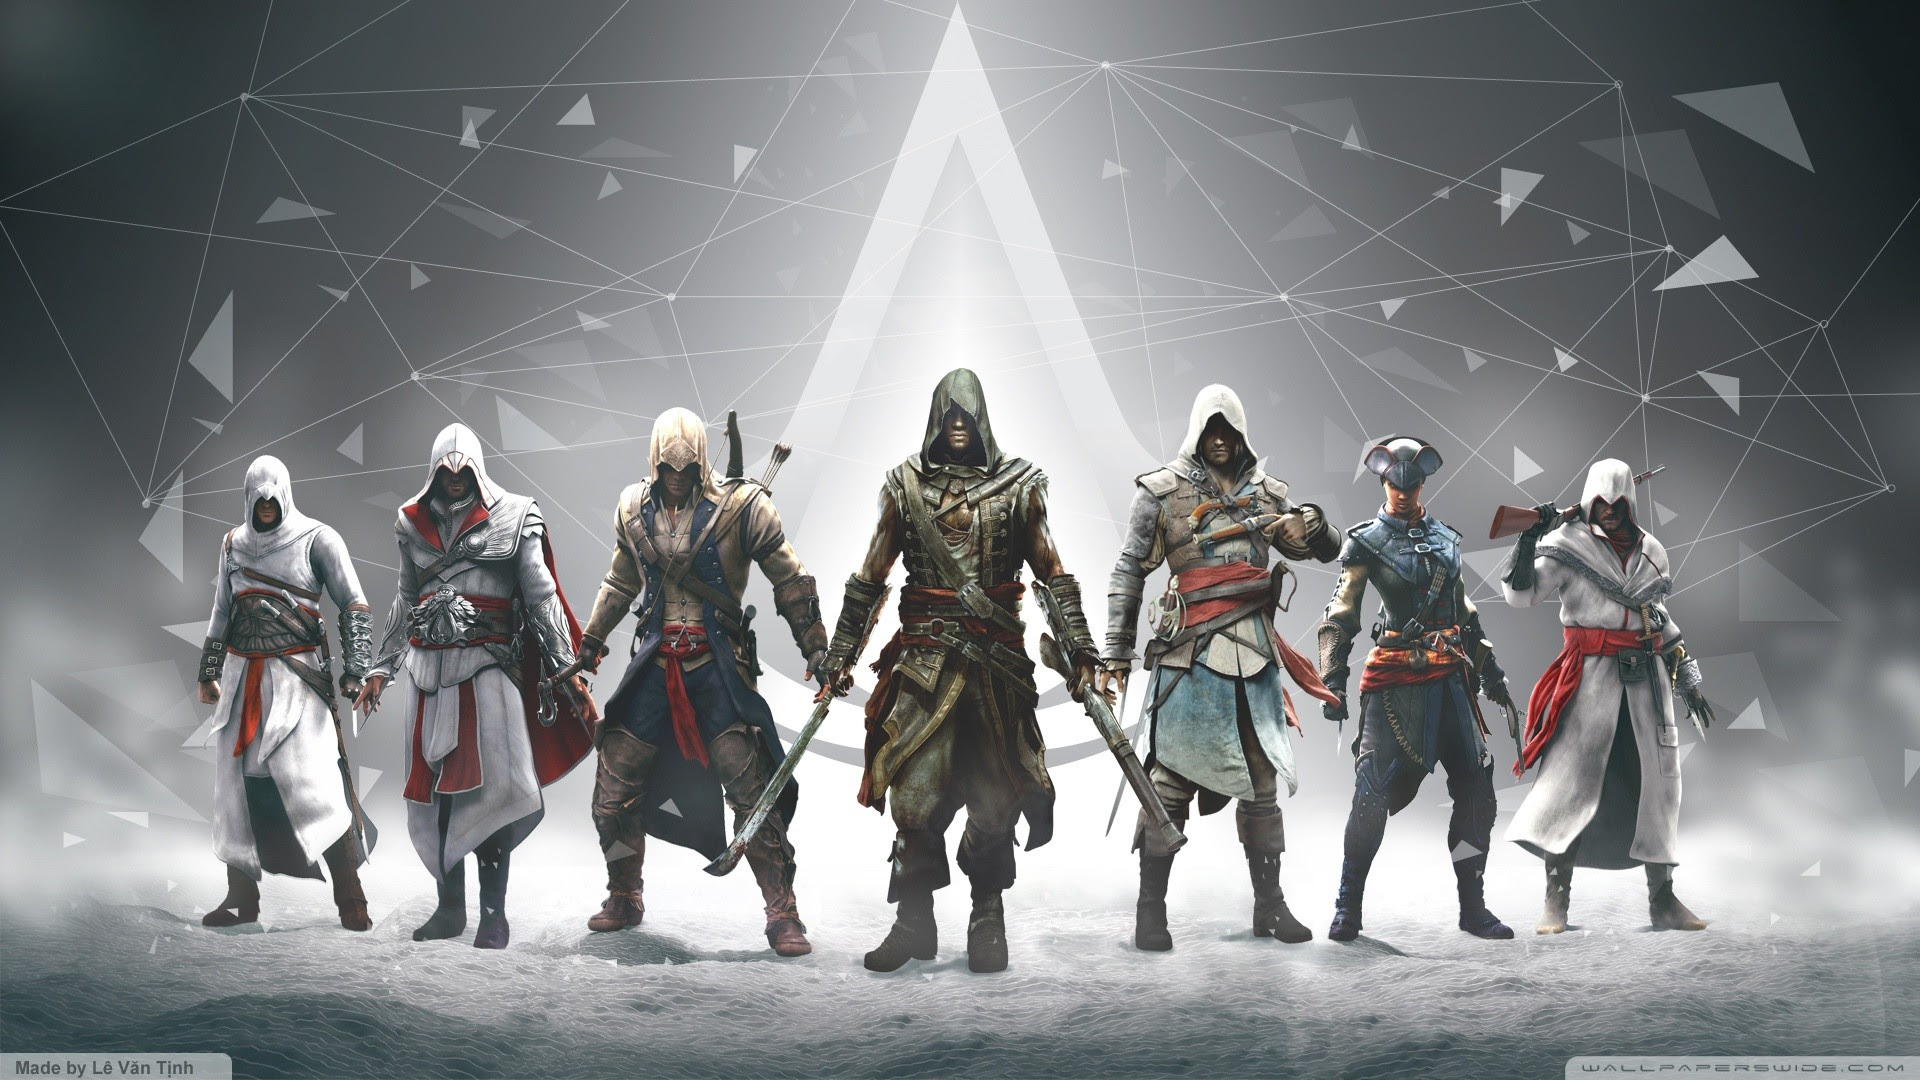 Ultra Hd Assassin Creed Wallpaper 4k